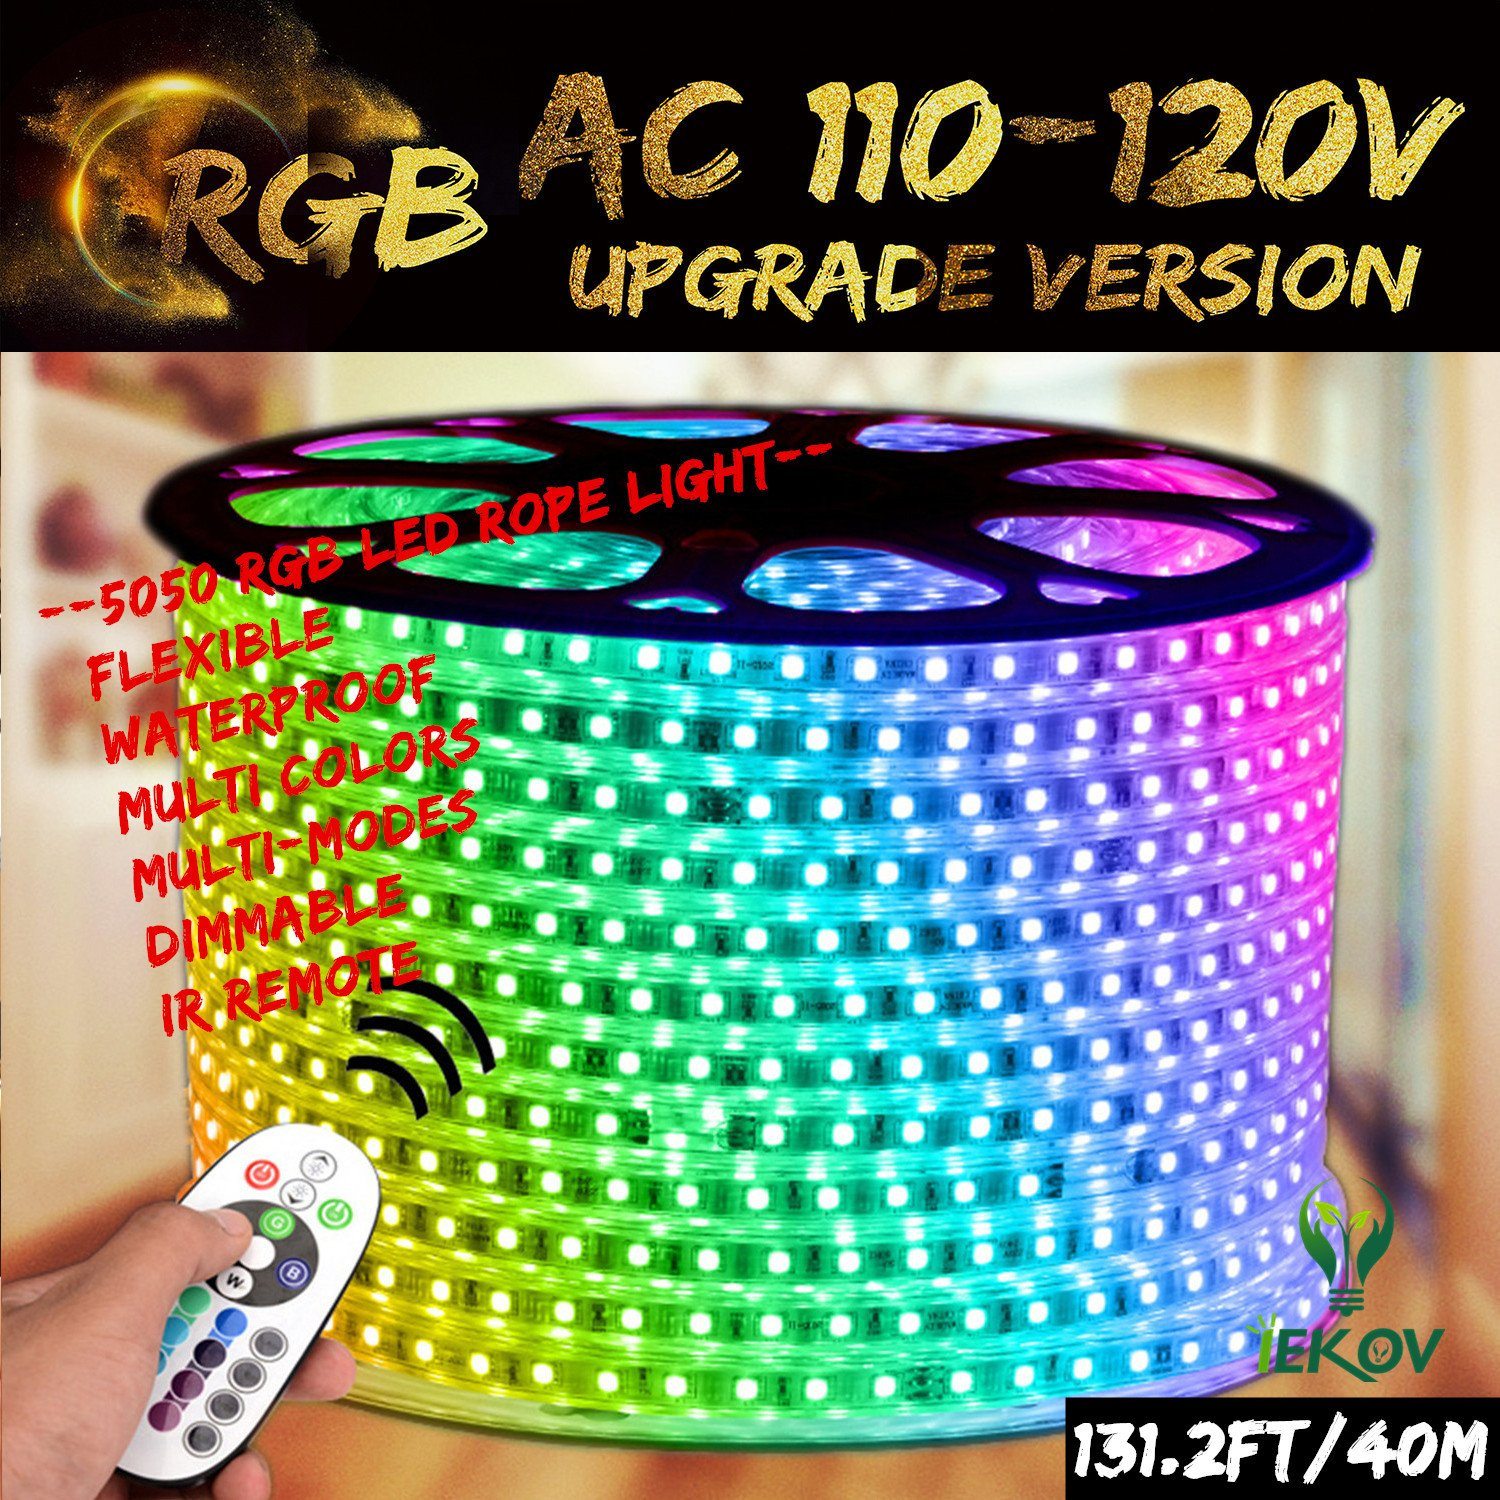 RGB LED Strip Light, IEKOV™ AC 110-120V Flexible/Waterproof/Multi Colors/Multi-Modes Function/Dimmable SMD5050 LED Rope Light with Remote for Home/Office/Building Decoration (131.2ft/40m)